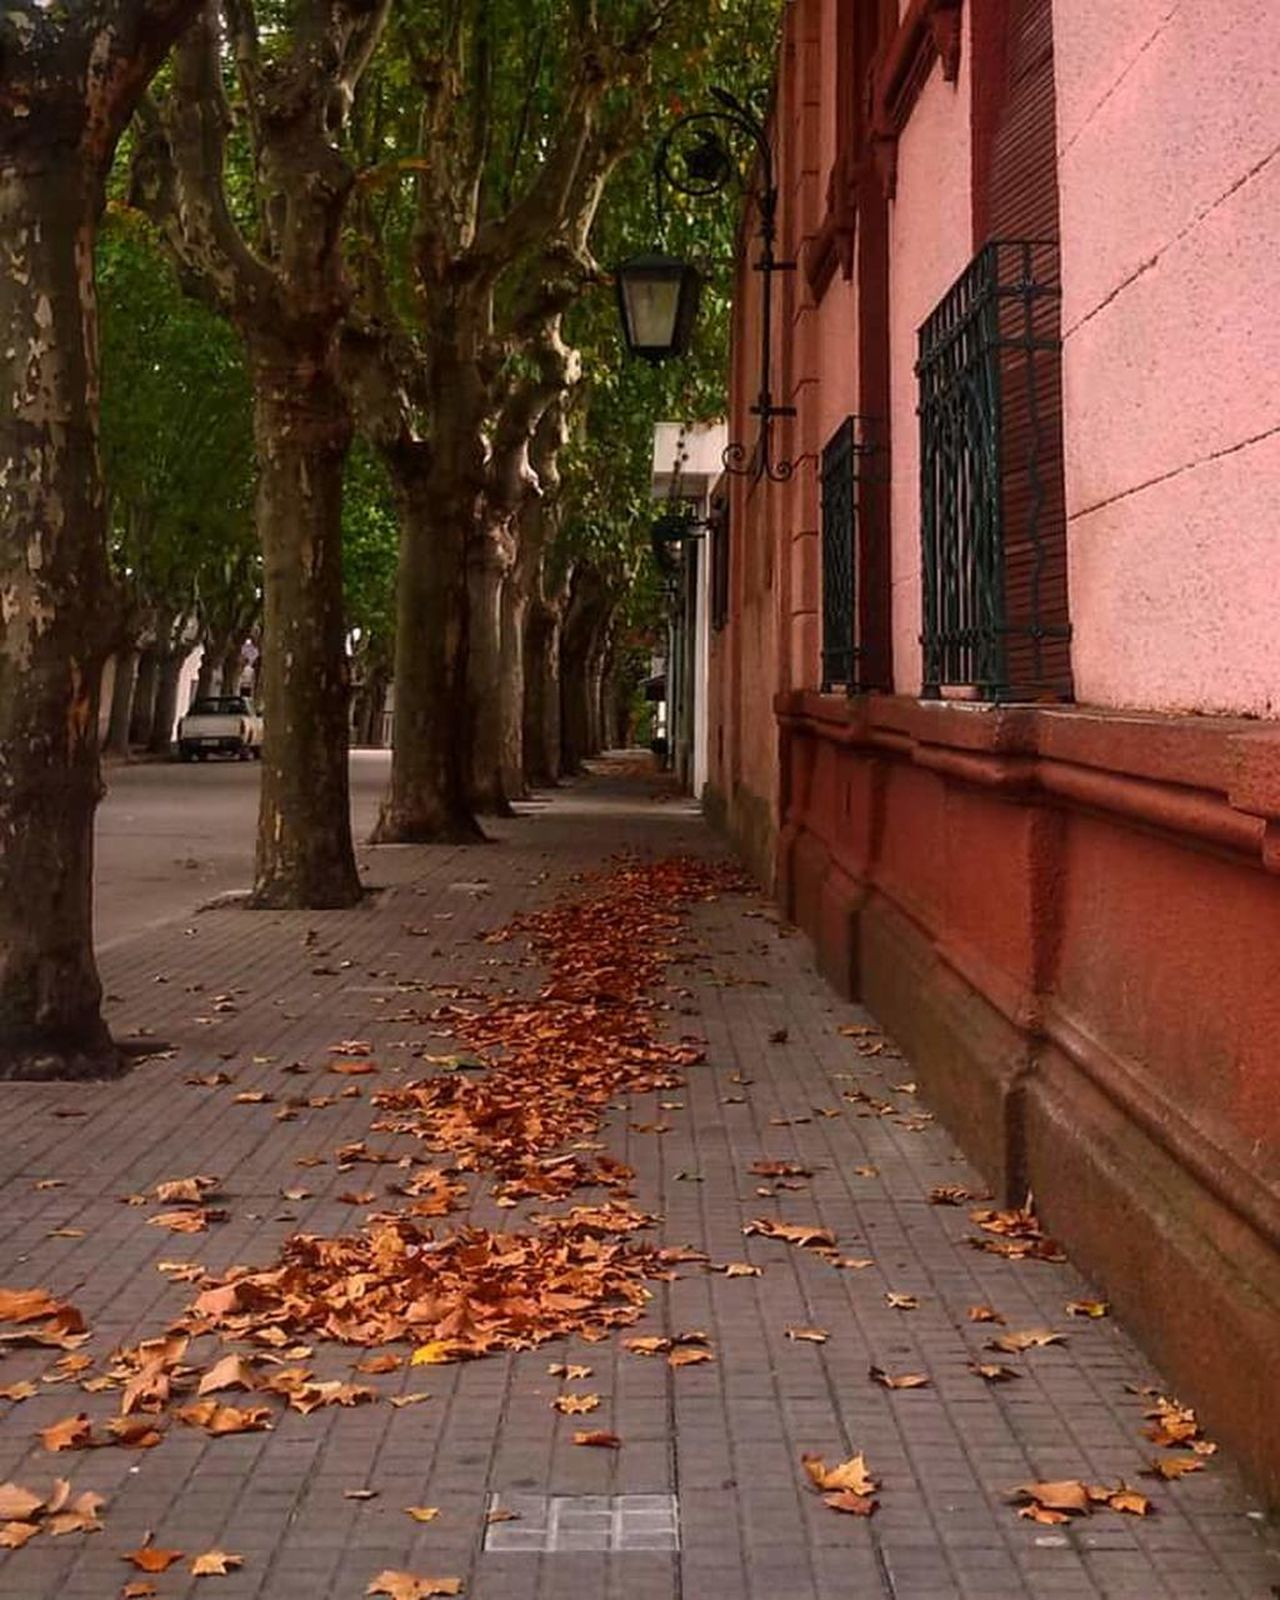 The Great Outdoors With Adobe The Great Outdoors - 2017 EyeEm AwardsLeaf Autumn Colors Autumn Leeves Architecture Colors Of Autumn Change Outdoors Street Tree Building Exterior No People Day Built Structure Nature City The Street Photographer - 2017 EyeEm Awards